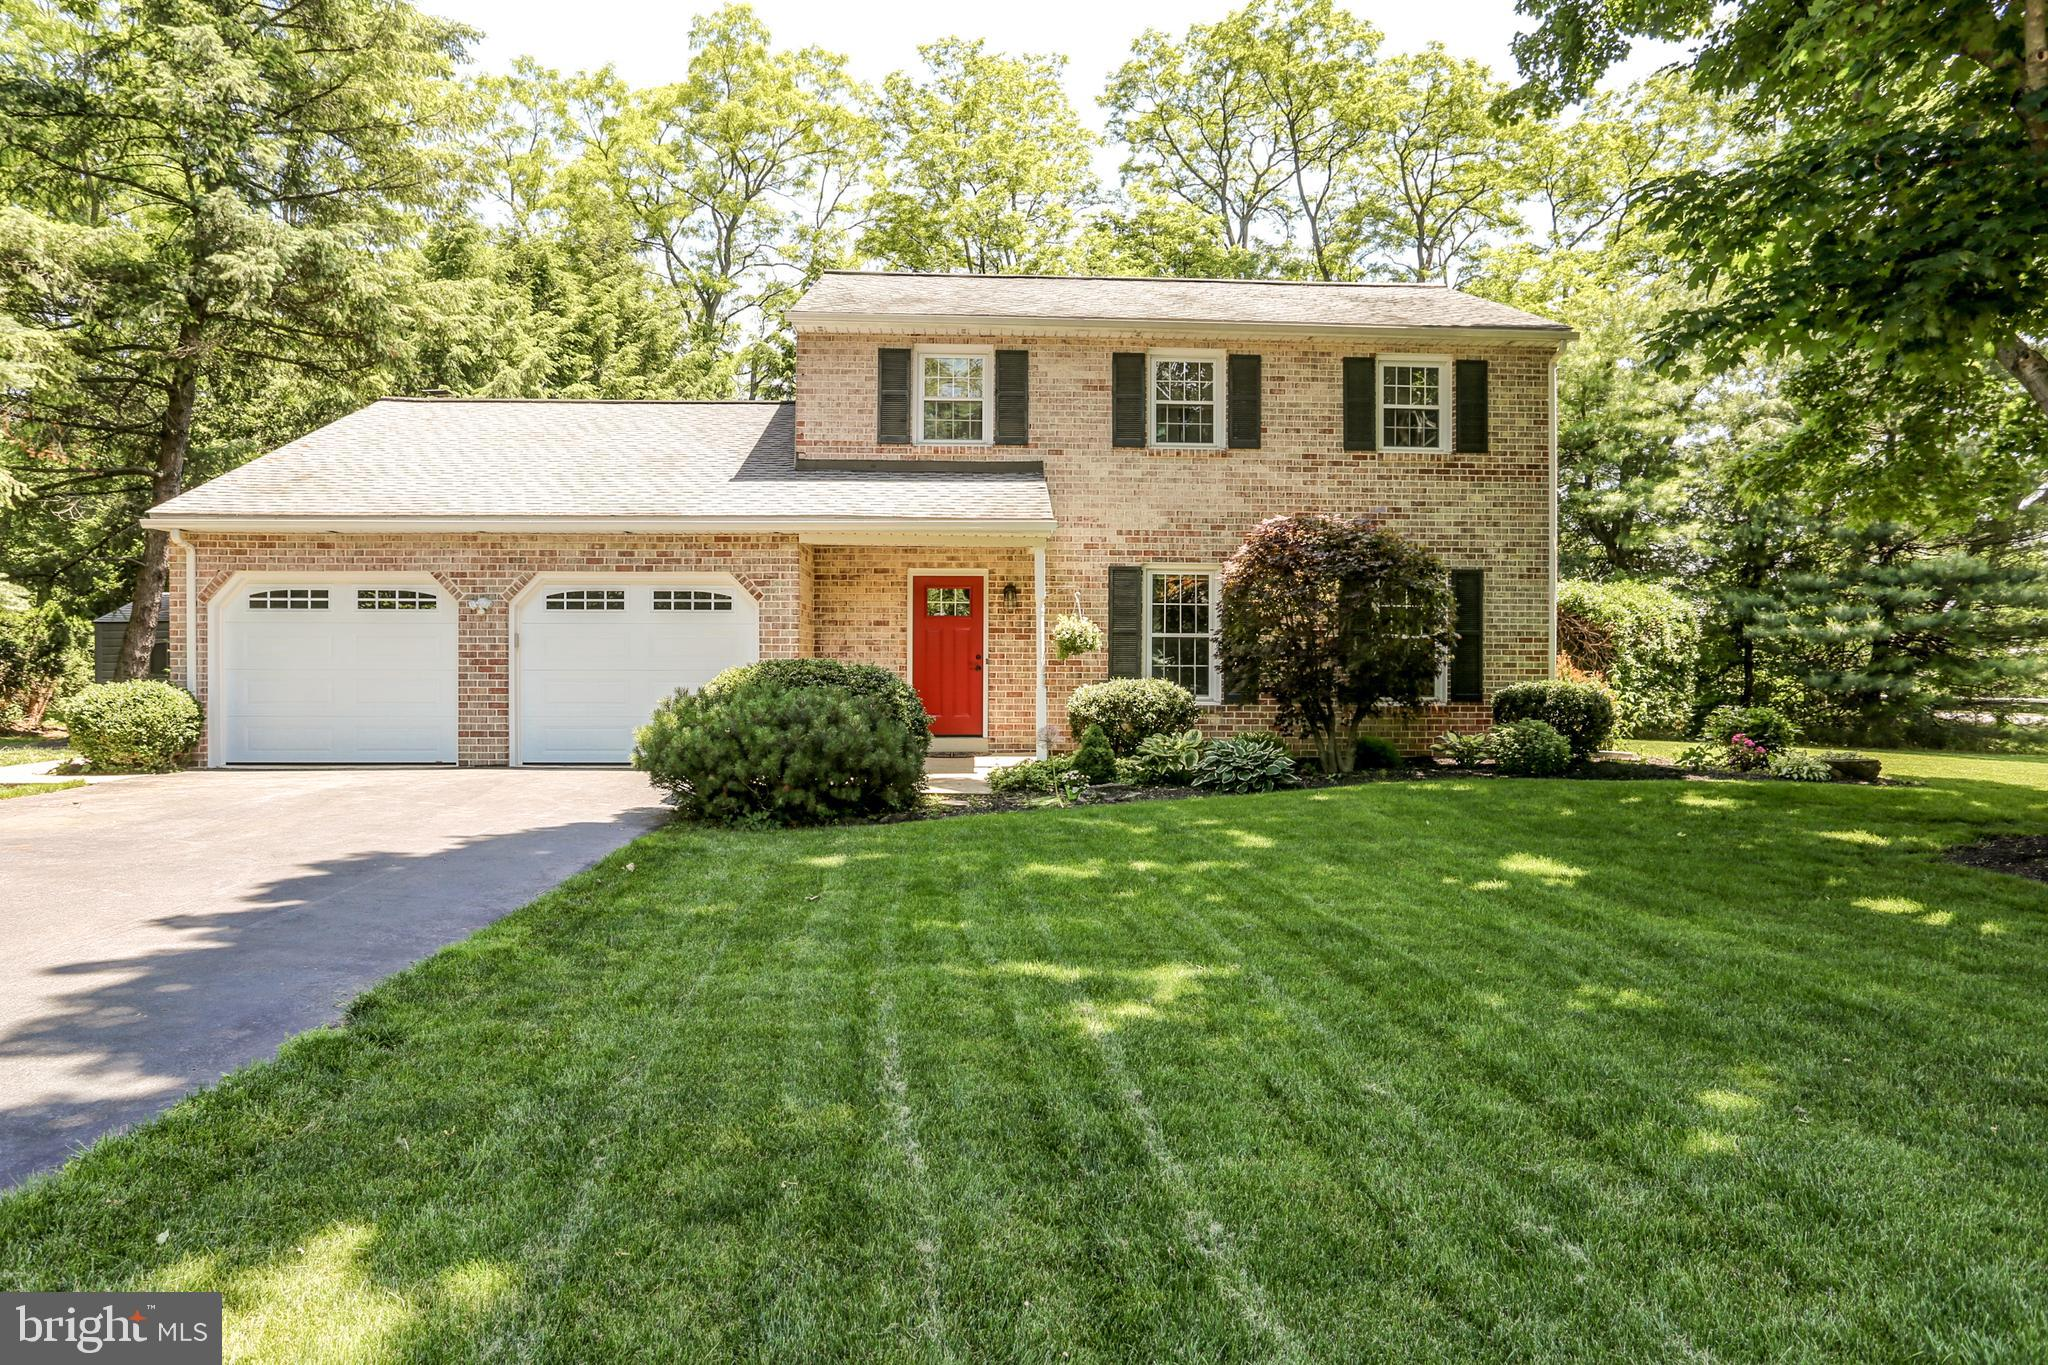 Looking for a sweet home that is in a park-like setting on almost 1/2 acre?  This is the one!  Pride of ownership is noted from the moment you pull up to the house.   Beautiful landscaping surrounds you.  Clean, neat and ready for the new owner!  Gleaming hardwood, tile, and marble, oh my! Summers will be enjoyed on your private stamped concrete back patio and winters will be enjoyed in front of your cozy fireplace in the family room.  Enjoy your meals in the eat-in kitchen highlighted with granite and tile back splash or in the formal dining room accented with chair rail and crown molding.  The Owner's Suite offers a huge walk-in closet and updated bath with solar tube to allow for natural light..  Check out the built-in shelves in Bedroom 3.  The finished lower level gives extra living space and the crawl space adds additional extra storage space.  You'll also find great storage space in the attic.  All appliances are included.  Make this your next Home Sweet Home!